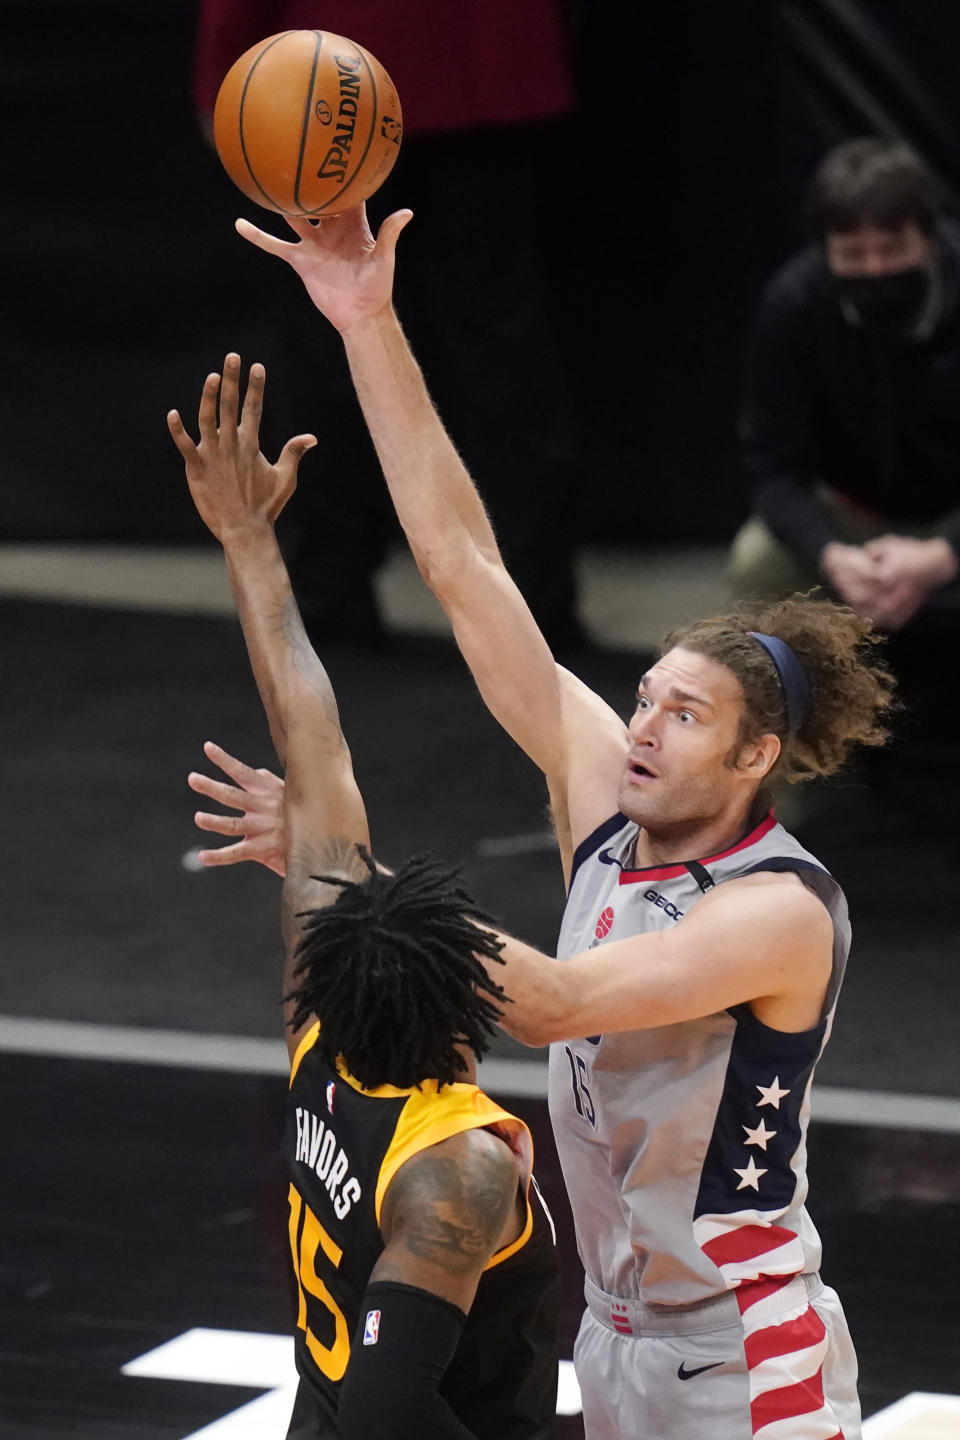 Washington Wizards center Robin Lopez, right, shoots as Utah Jazz center Derrick Favors, left, defends in the first half during an NBA basketball game Monday, April 12, 2021, in Salt Lake City. (AP Photo/Rick Bowmer)